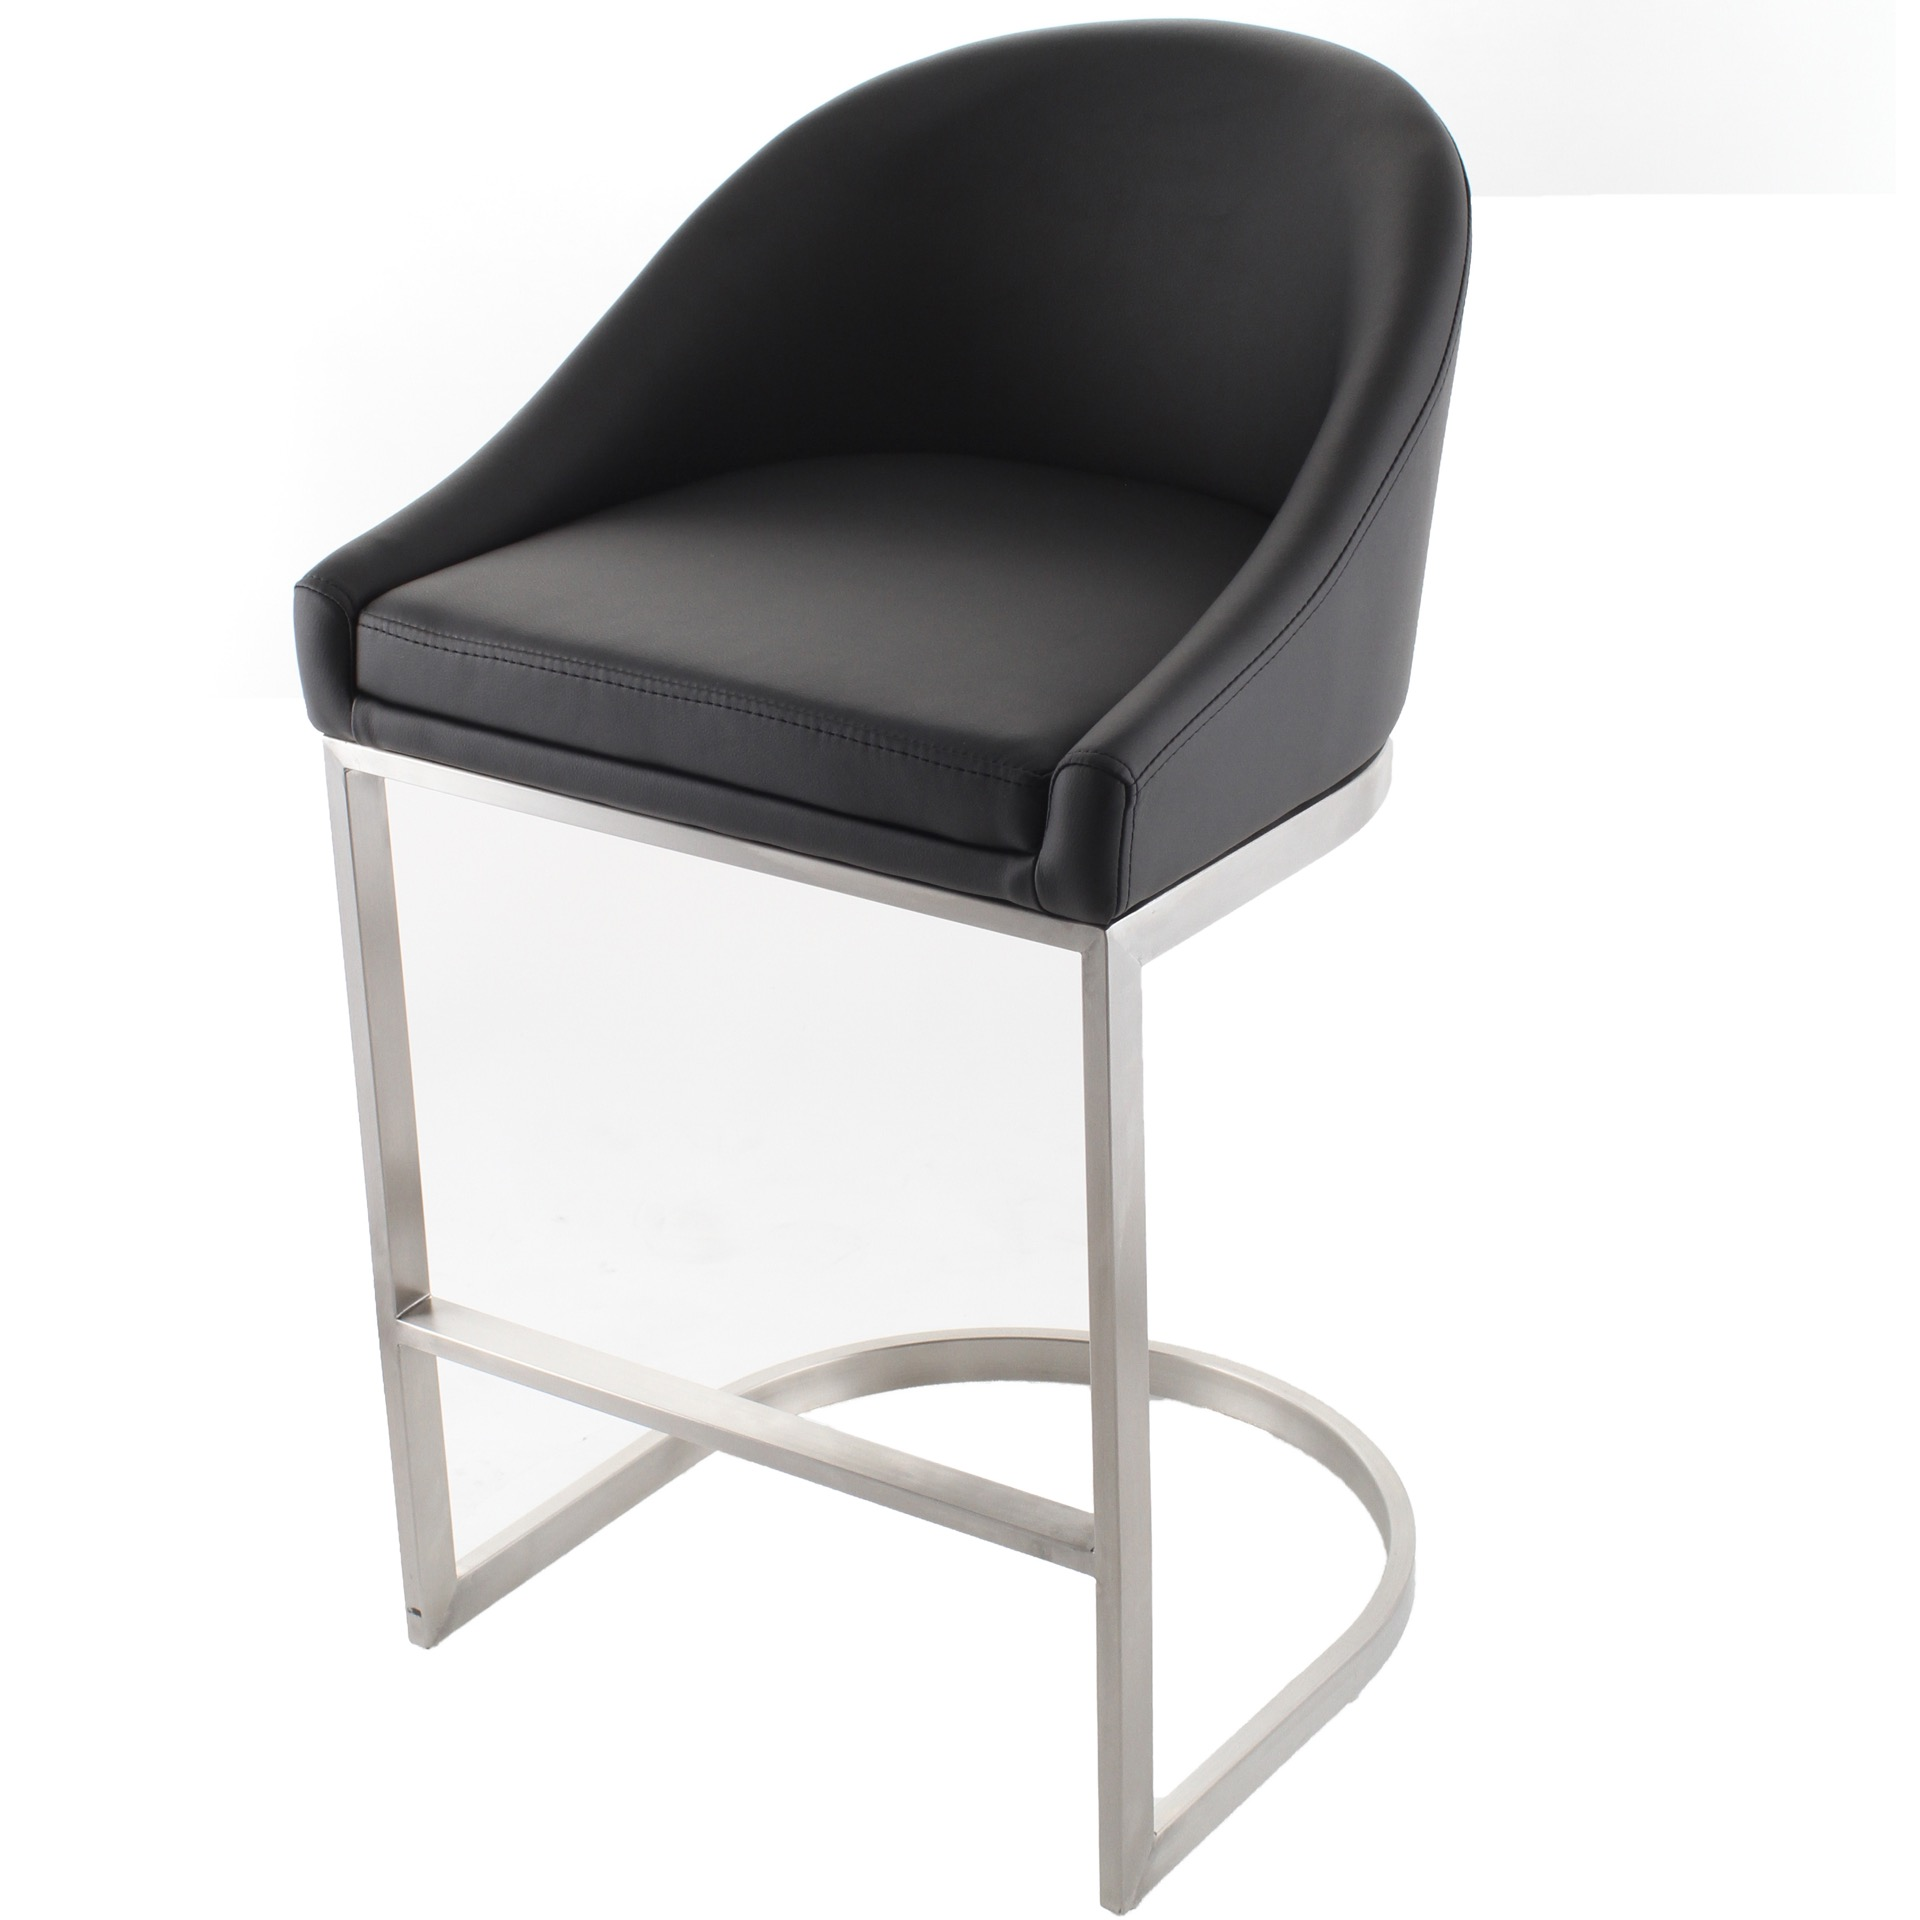 Amazing Otus 26 Brushed Stainless Steel Curved Stationary Counter Bralicious Painted Fabric Chair Ideas Braliciousco